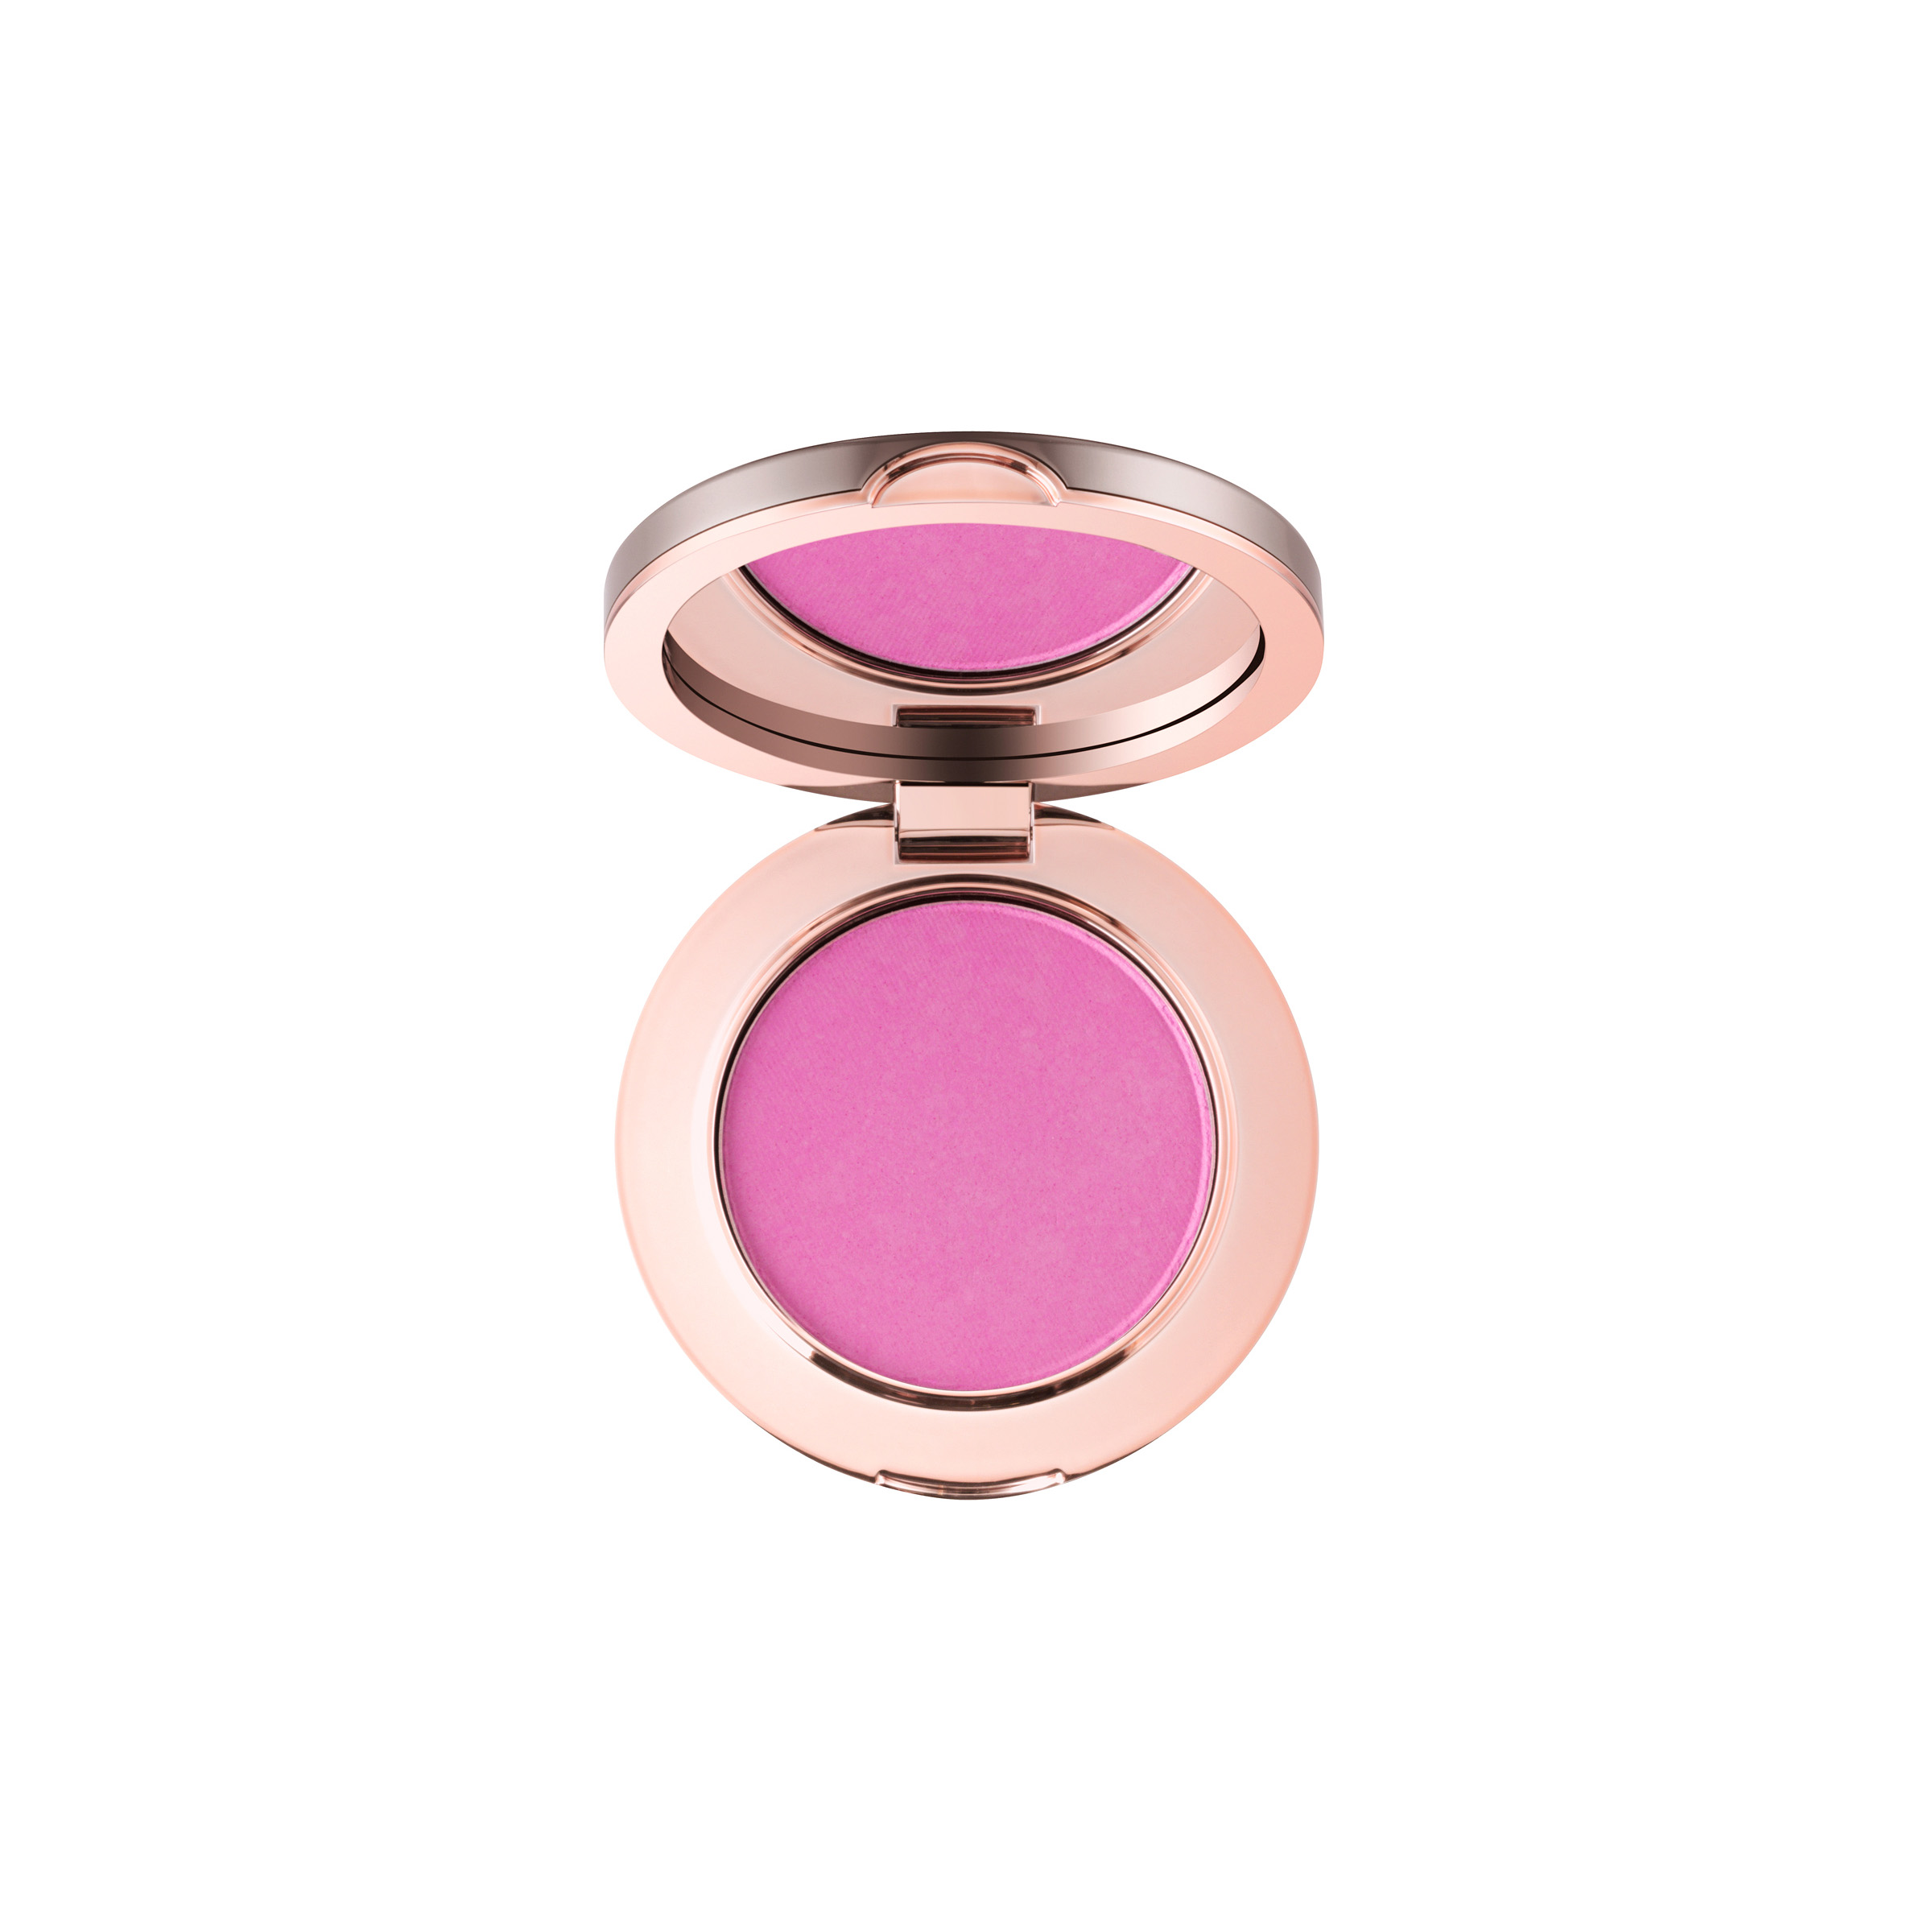 Colour Blush Compact Powder Blusher - Opera